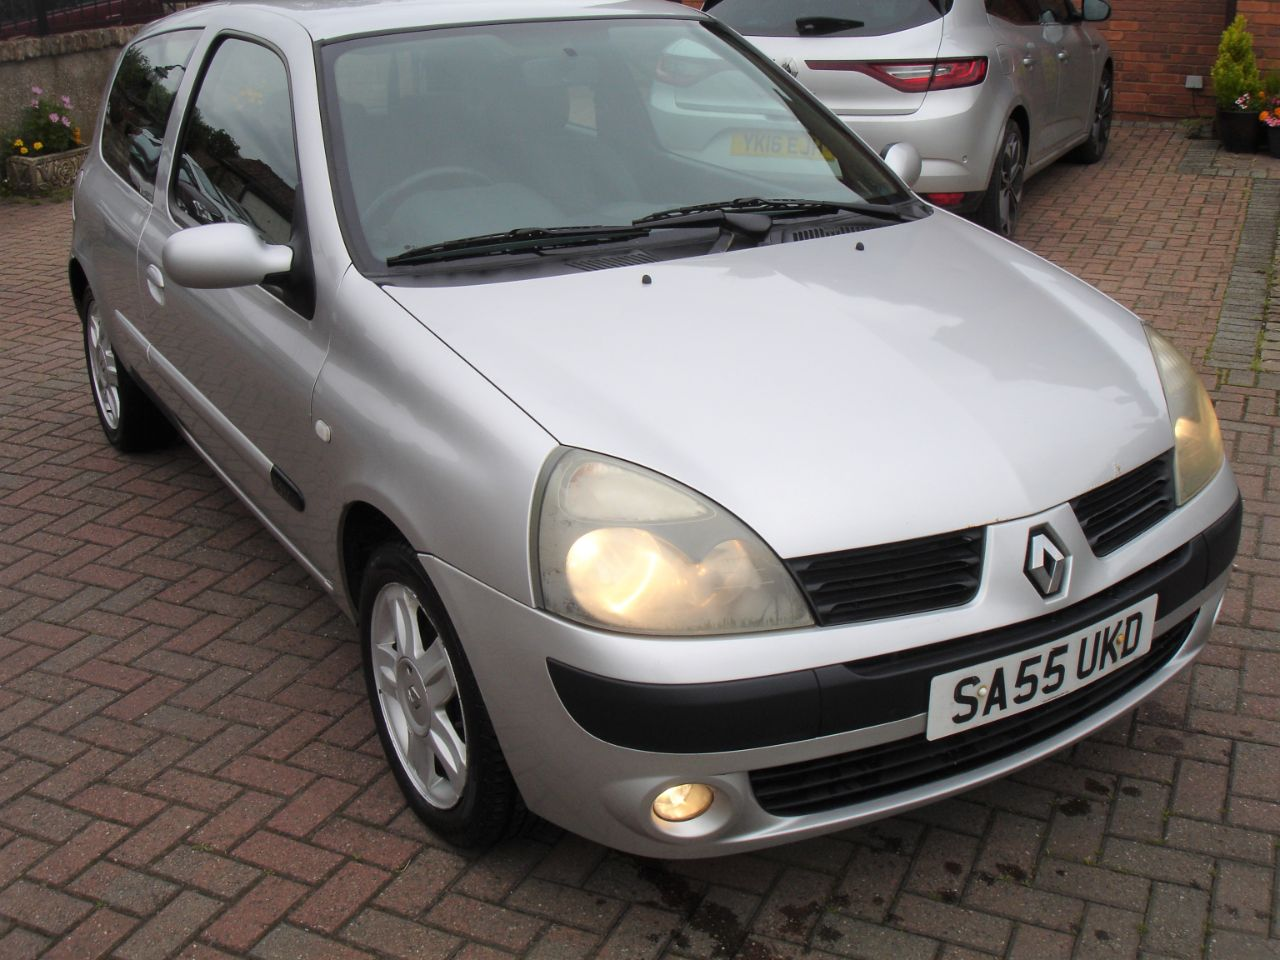 Renault Clio 1.2 16V Extreme 4 3dr Hatchback Petrol Silver at Level Pitch Selby